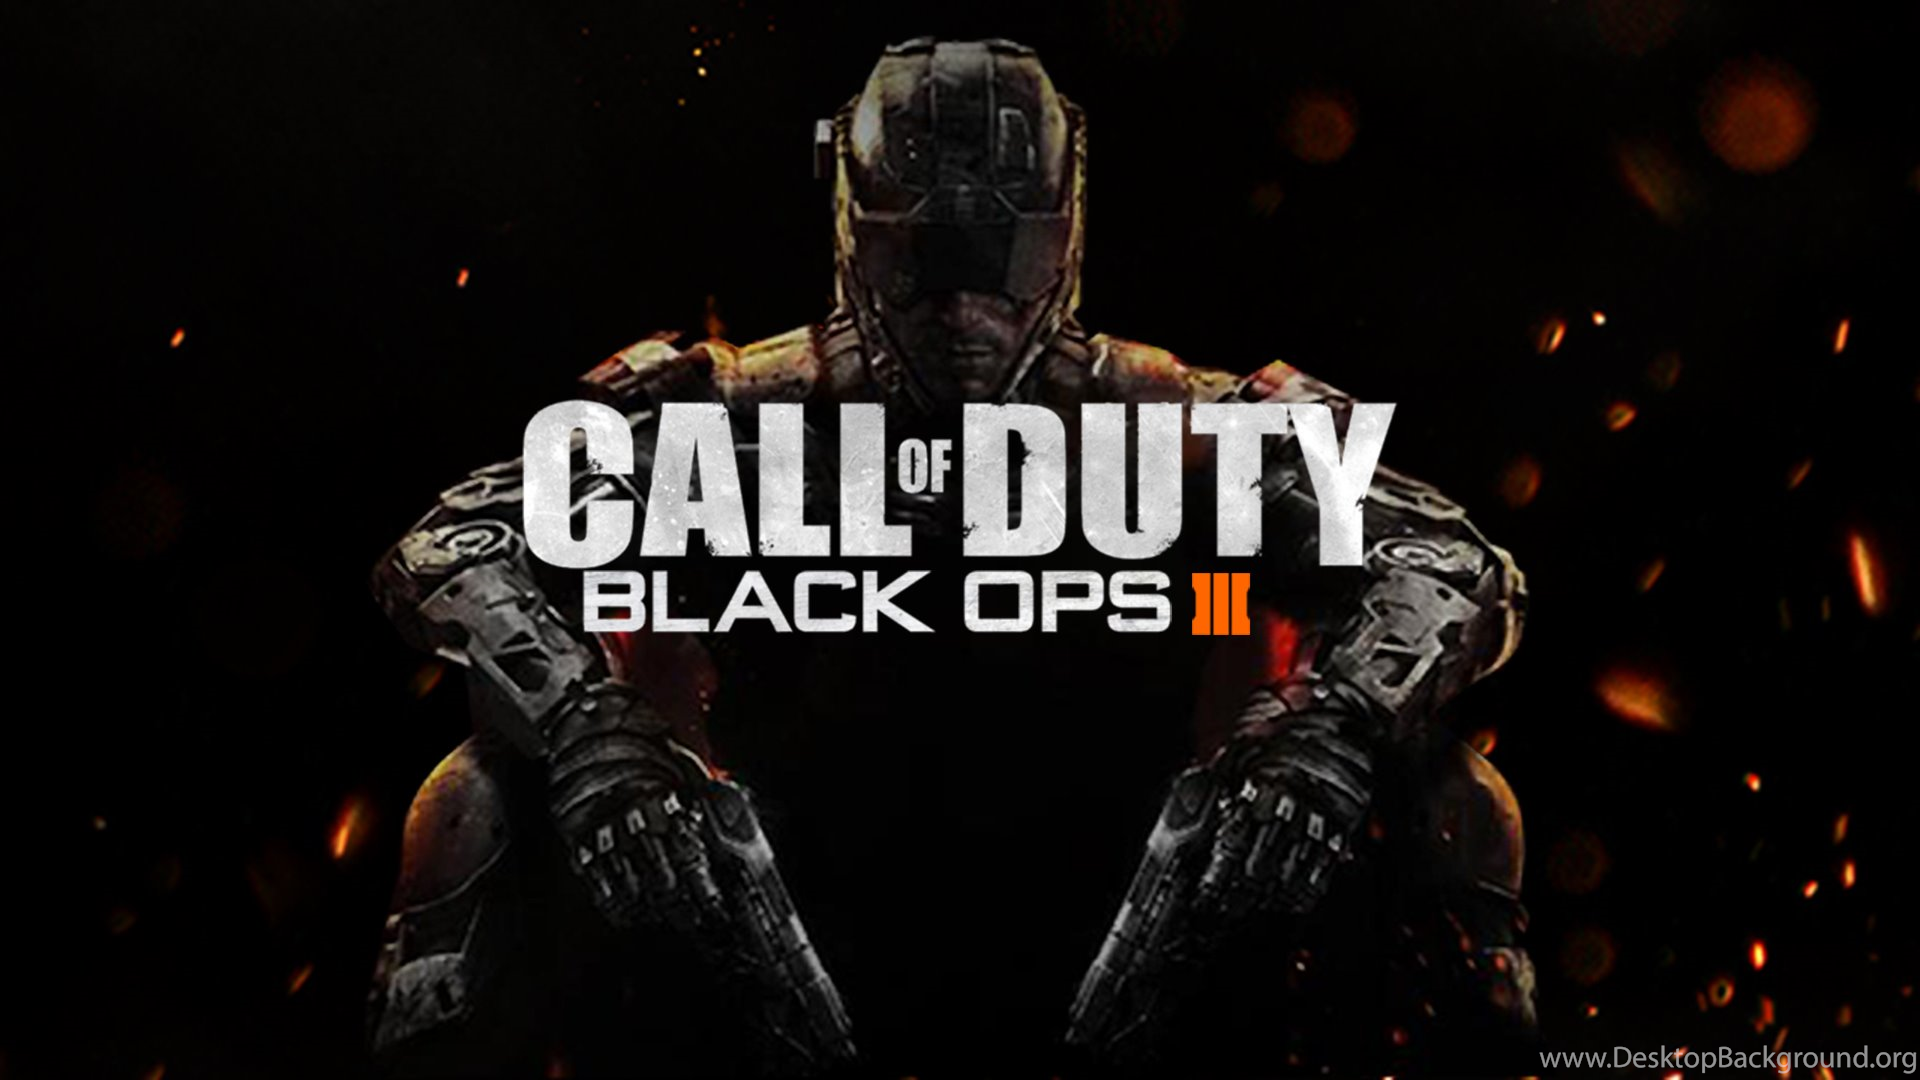 Call Of Duty Black Ops 3 Hd Wallpapers 4449 1920x1080 Px